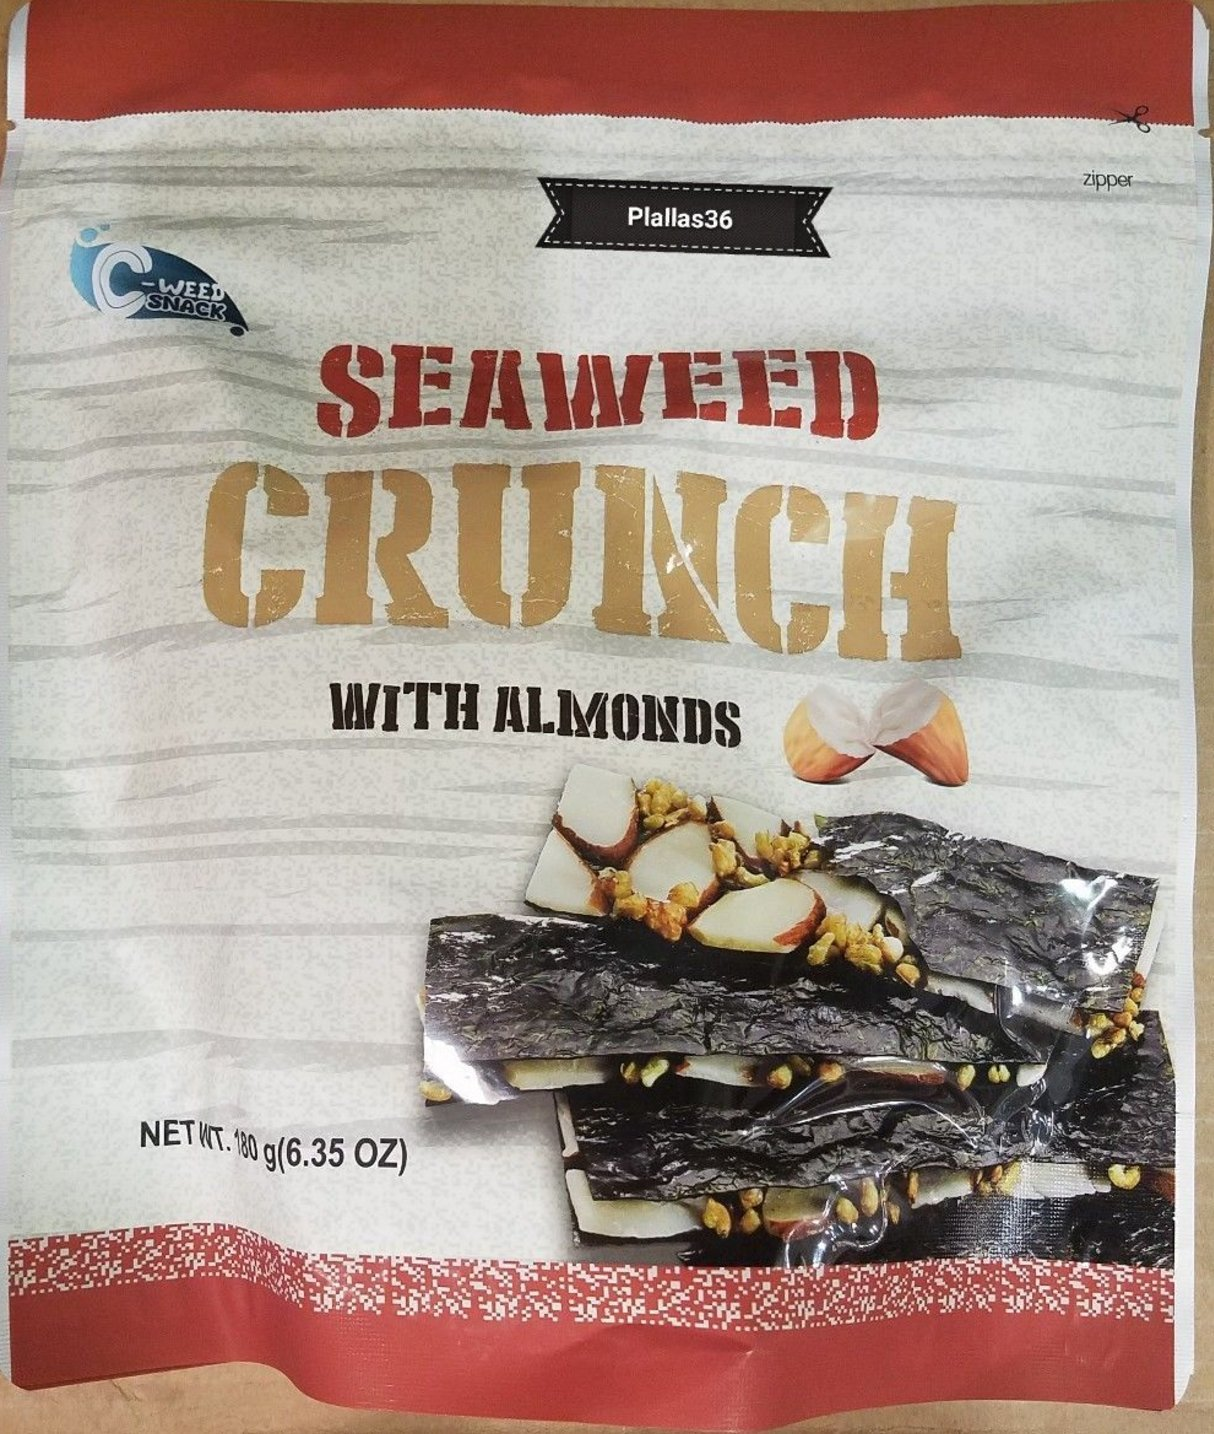 Seaweed Crunch with Almonds